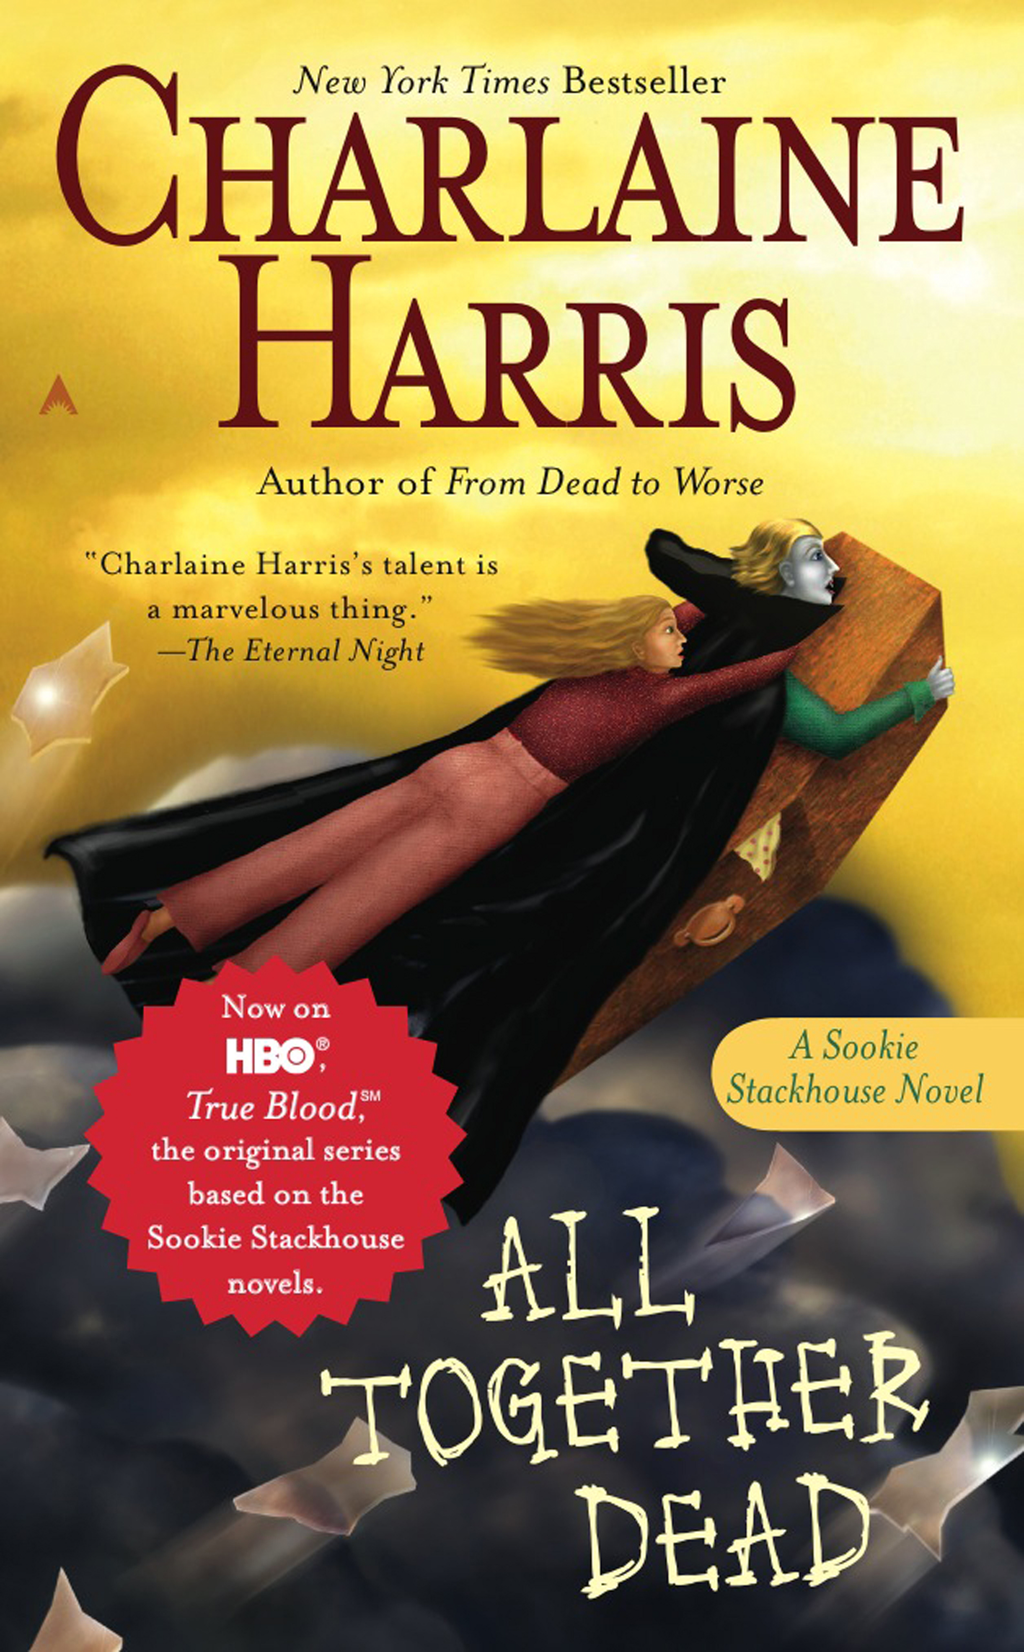 All Together Dead: A Sookie Stackhouse Novel